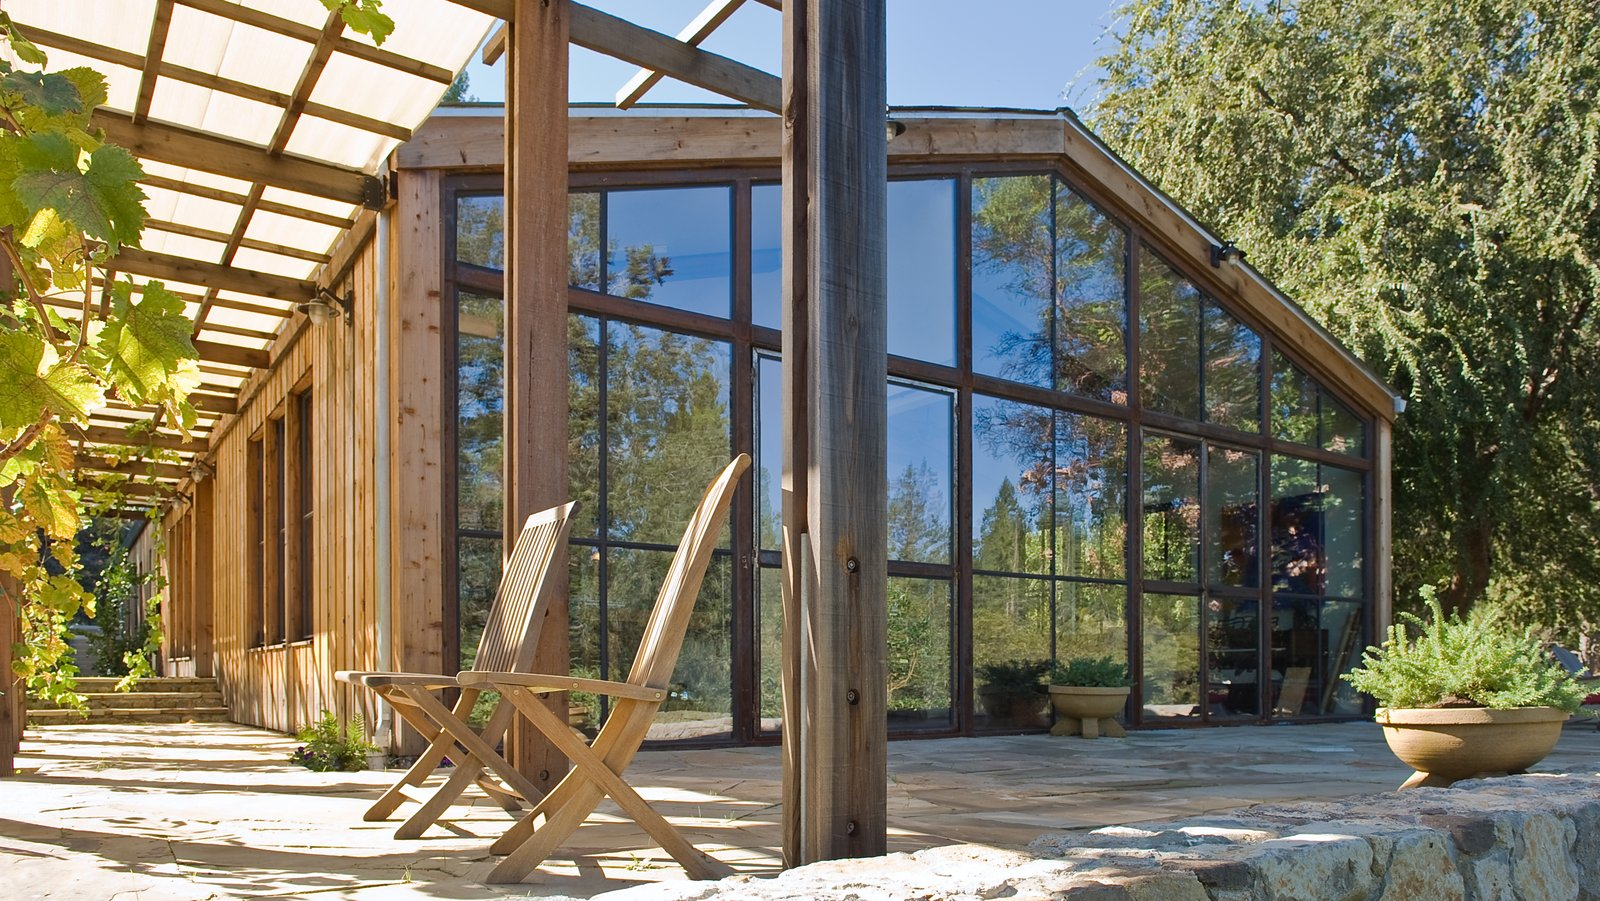 The gut renovation by Lundberg Design features cathedral ceilings, a completely glazed-end façade, and a dropped floor level in the living area. Additional elements include a Finnish soapstone stove in the center for heat; steel trusses and windows to add some visual detail; and a trellis on the front to add depth and texture to the façade. Tagged: Outdoor, Large Patio, Porch, Deck, Stone Patio, Porch, Deck, and Trees.  McDonald Residence by Lundberg Design